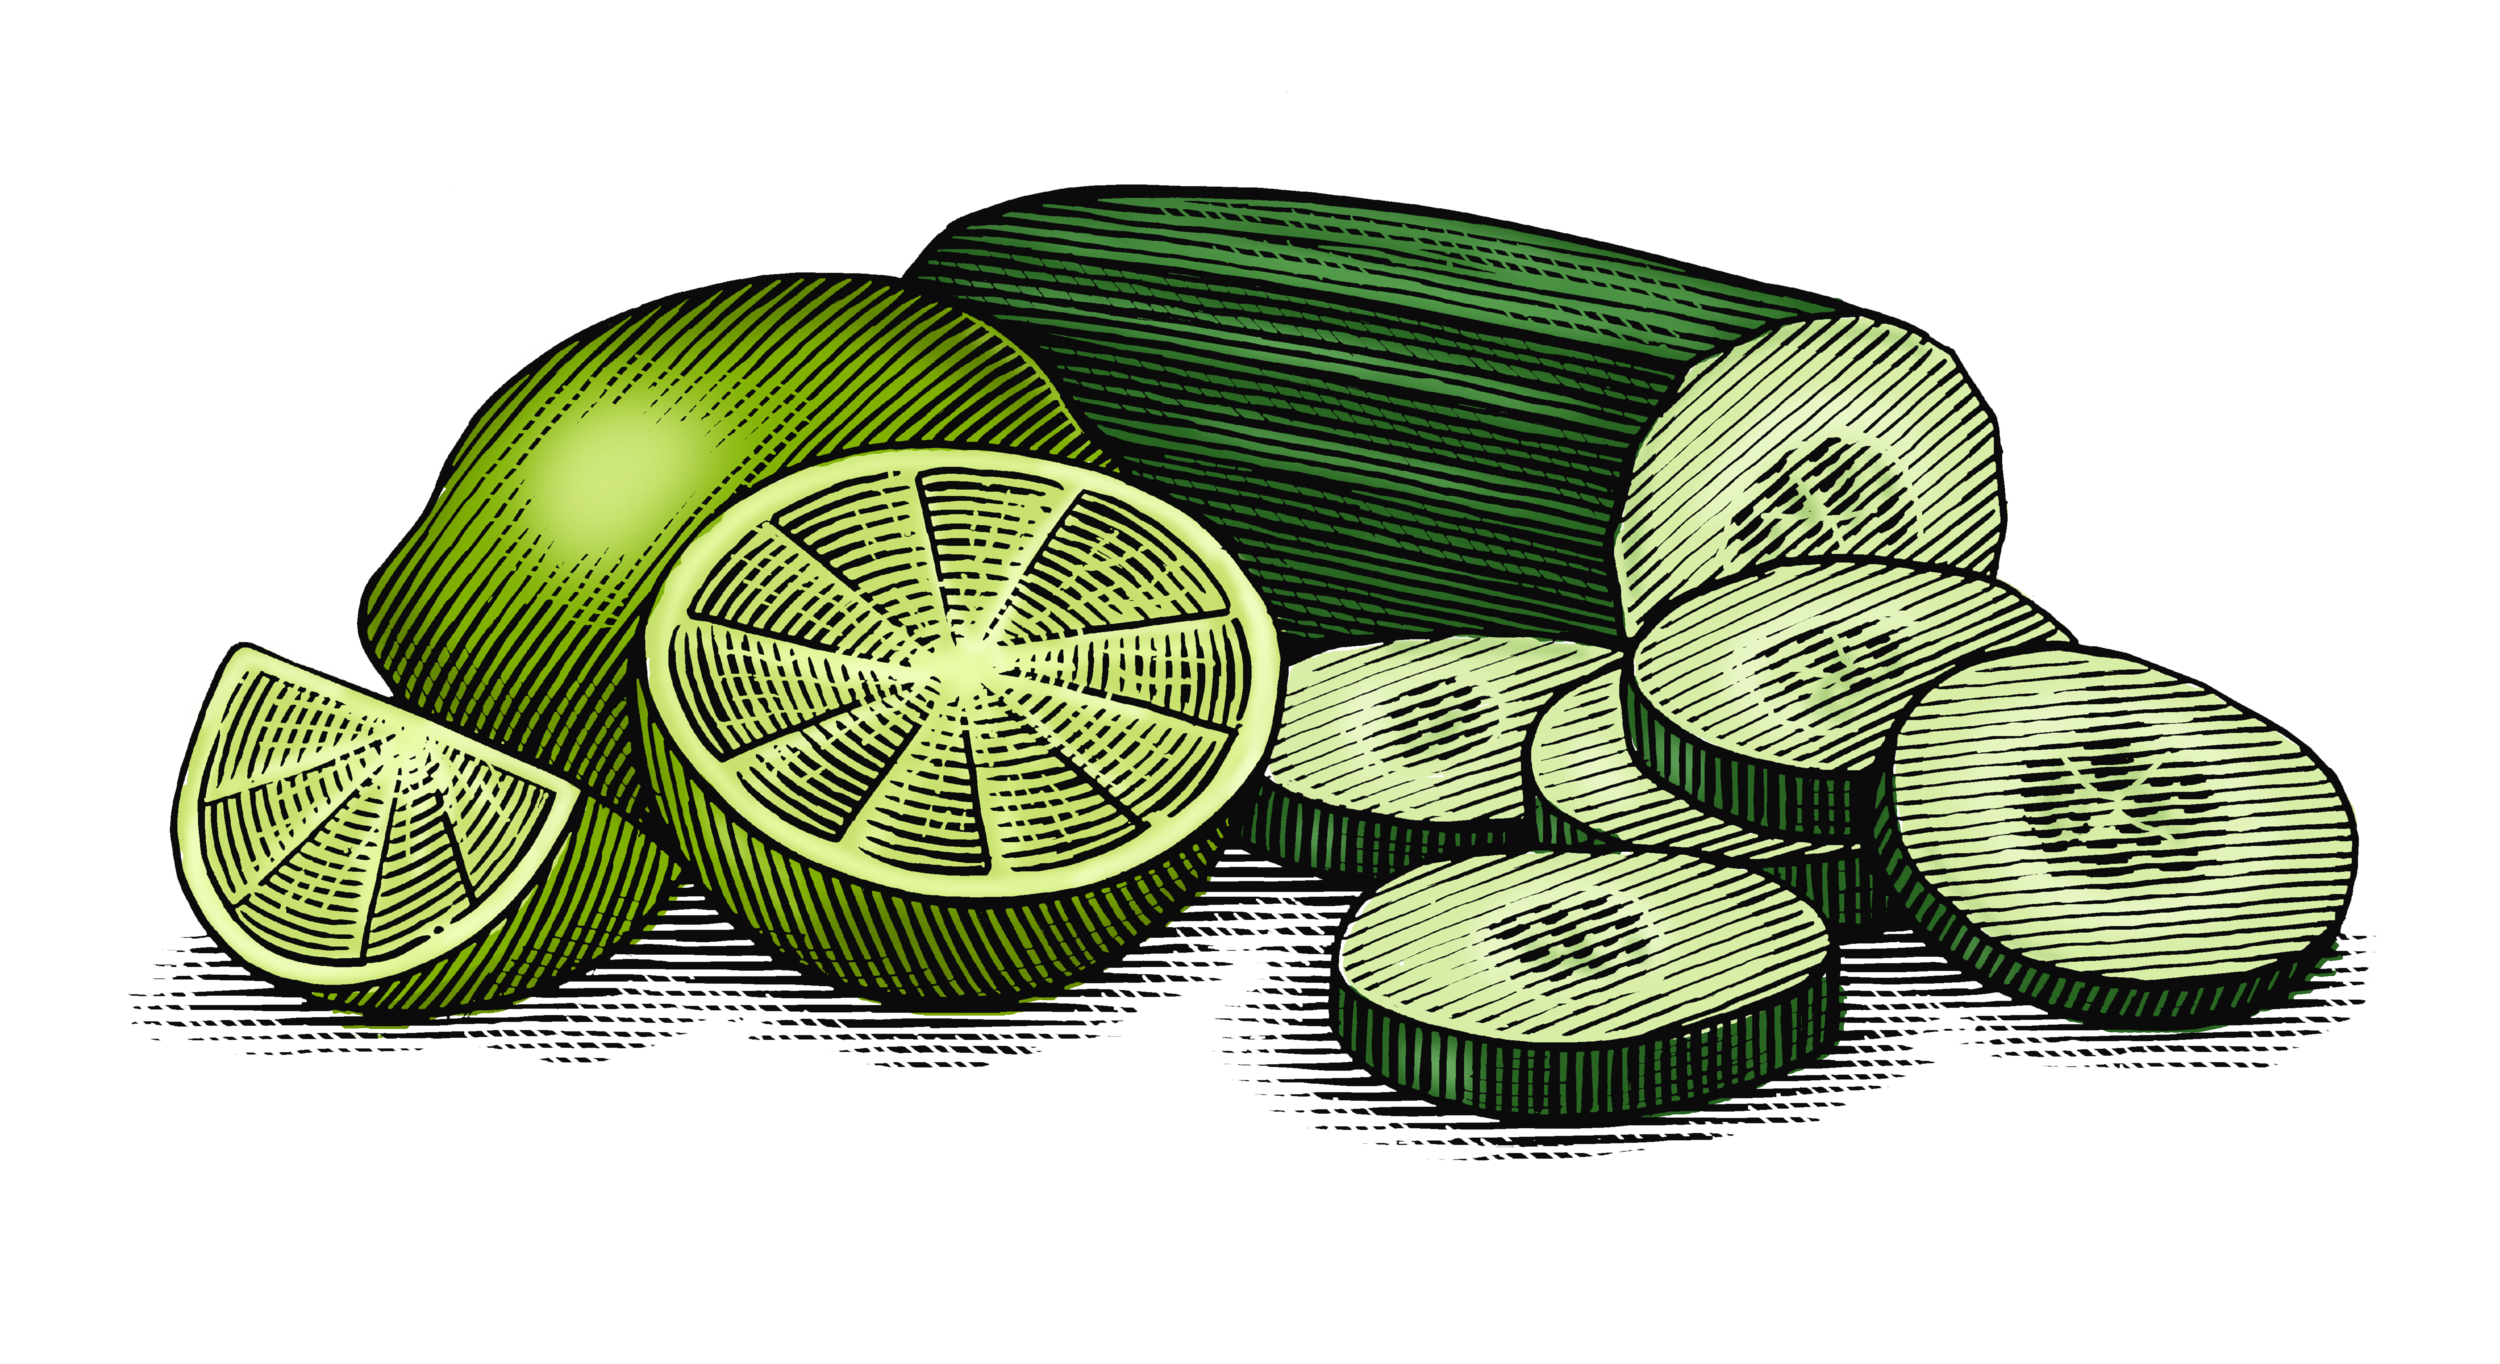 Cucumber_Lime_final_art_layer (1).png